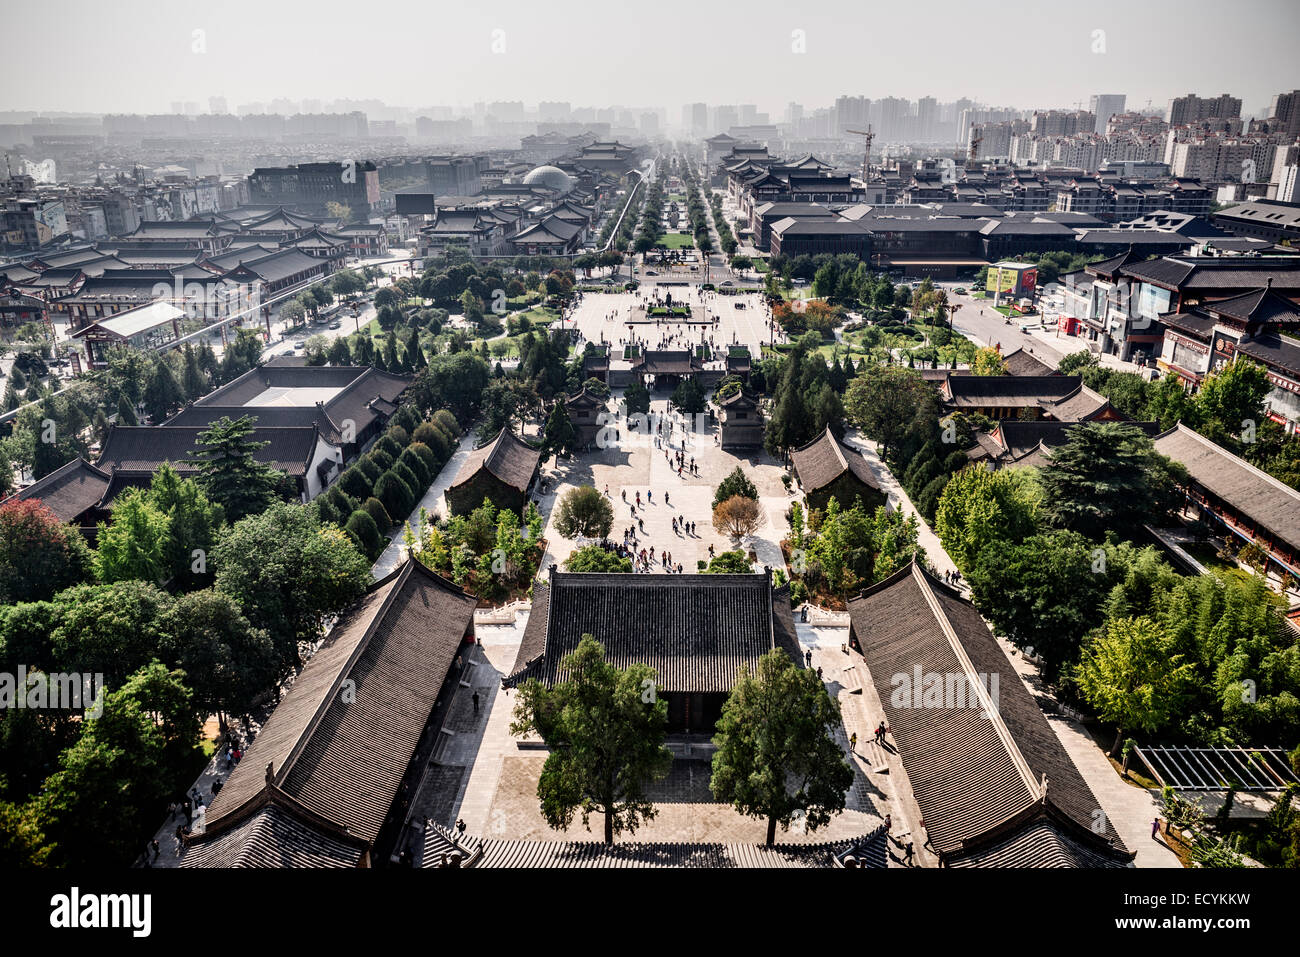 Xi'an aerial city view from Giant Wild Goose Pagoda. Xi'an, Shaanxi, China 2014 - Stock Image